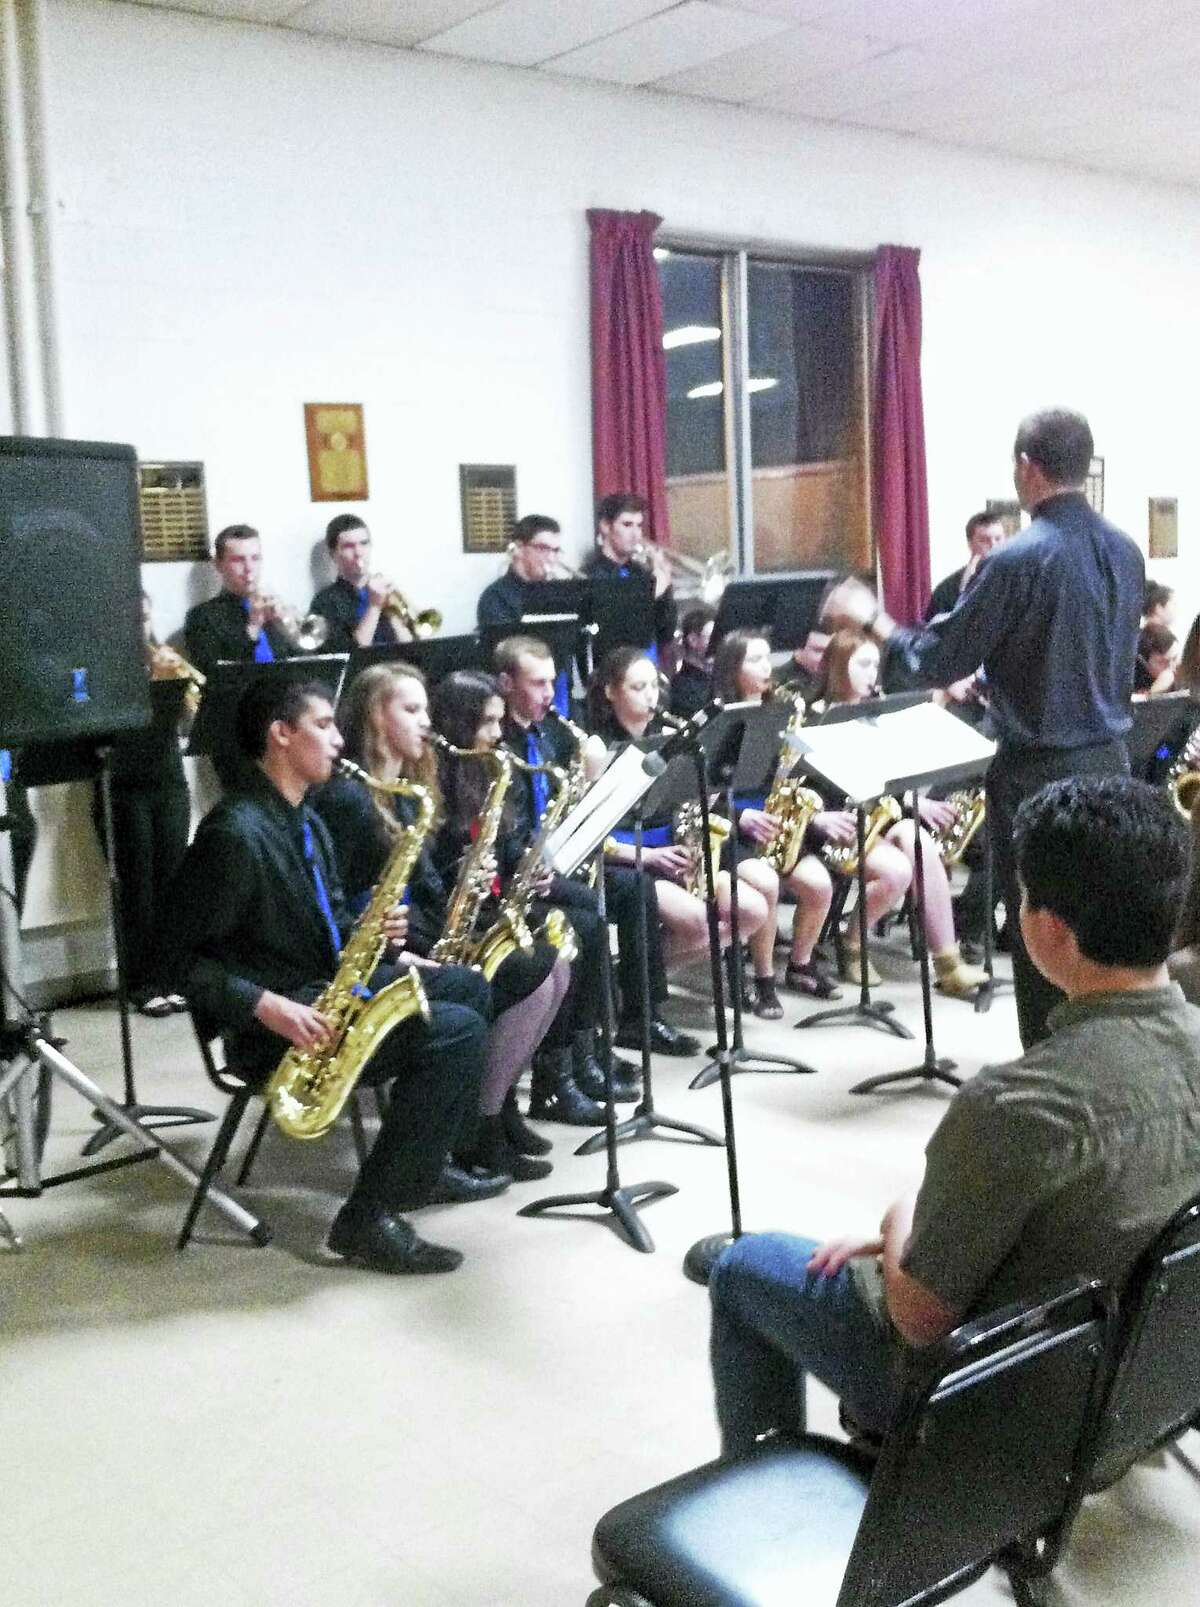 The Litchfield High School jazz ensemble, joined by Torrington High School's jazz ensemble and other musicians from LHS, will perform in the Southern New England High School Jazz Festival at Infinity Hall in Norfolk on Sunday, March 26.